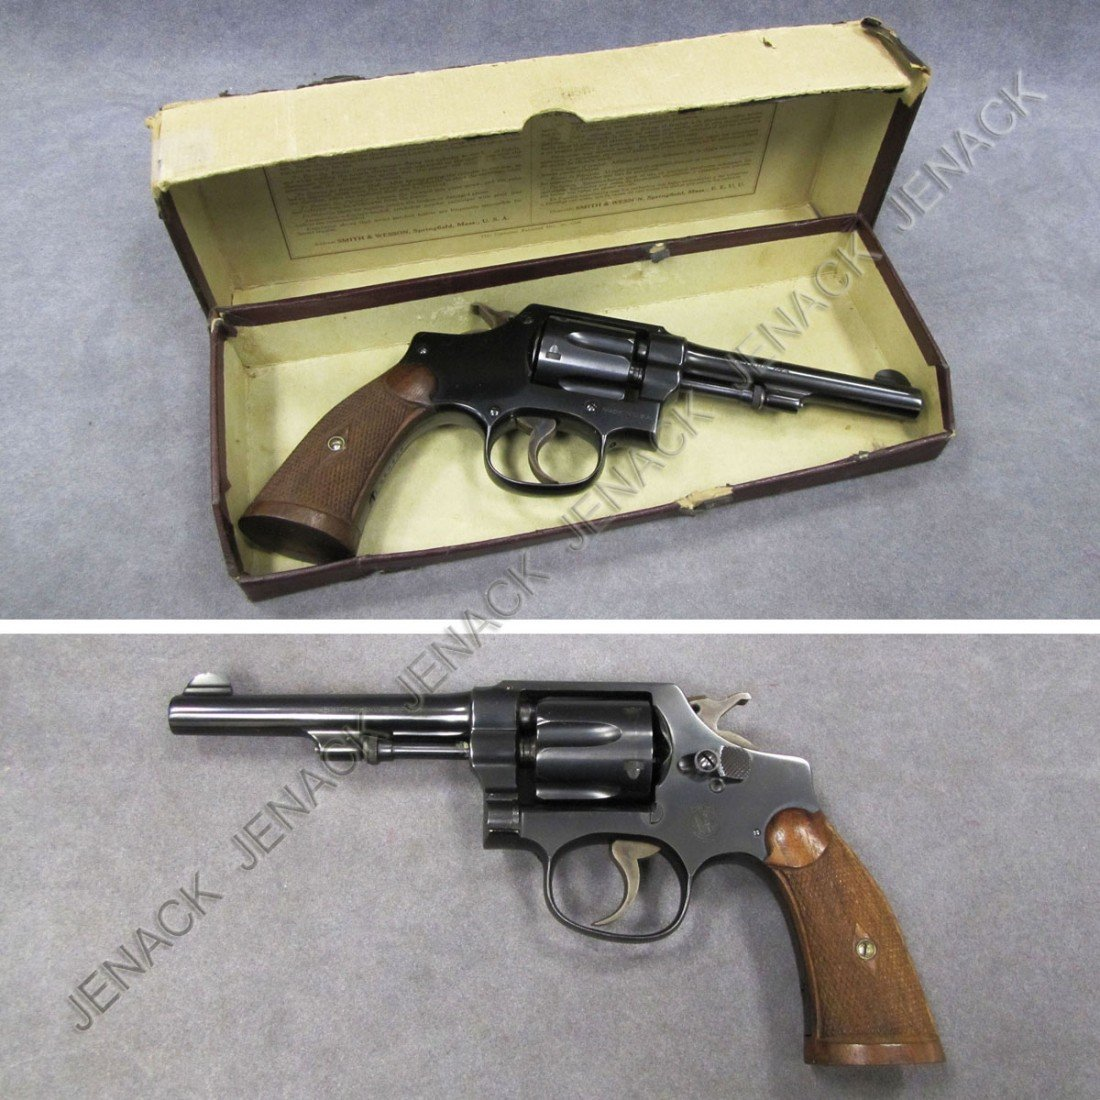 78: **RESTRICTED** SMITH & WESSON POLICE REVOLVER